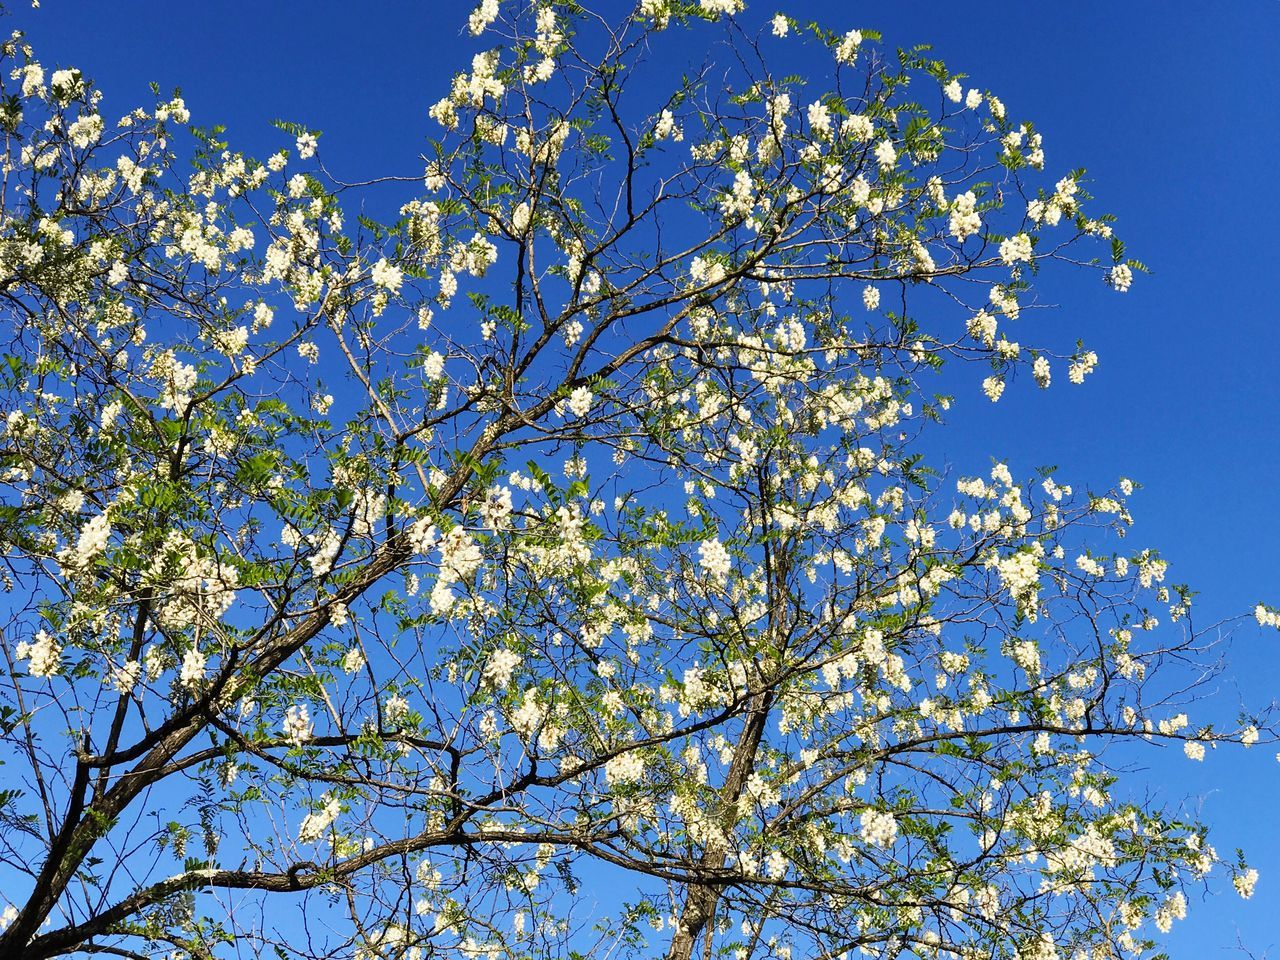 Acacia Acacia Tree Acacia Flowers Acacia Dealbata Branch Blossom Branches Branches And Sky Branch And Flowers Sky Background Clear Sky Flower Tree Growth Low Angle View Blue Beauty In Nature Nature Springtime No People Fragility Magnolia Day Freshness Outdoors Petal Sky Spring